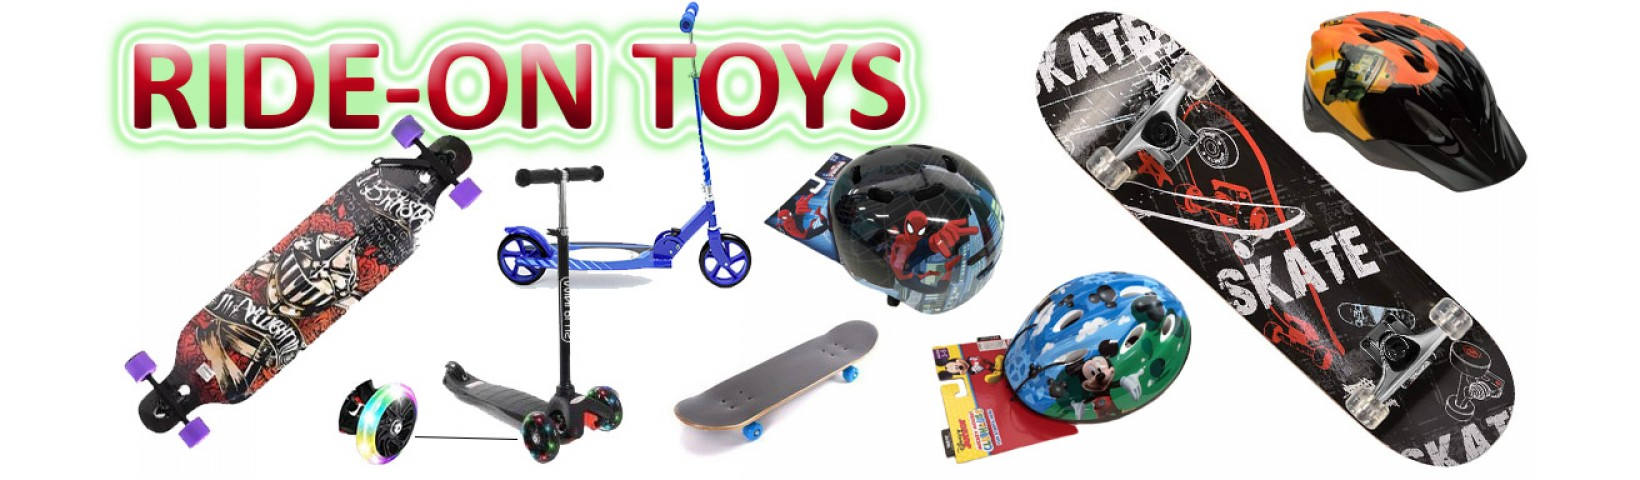 2021 Ride-On Toys